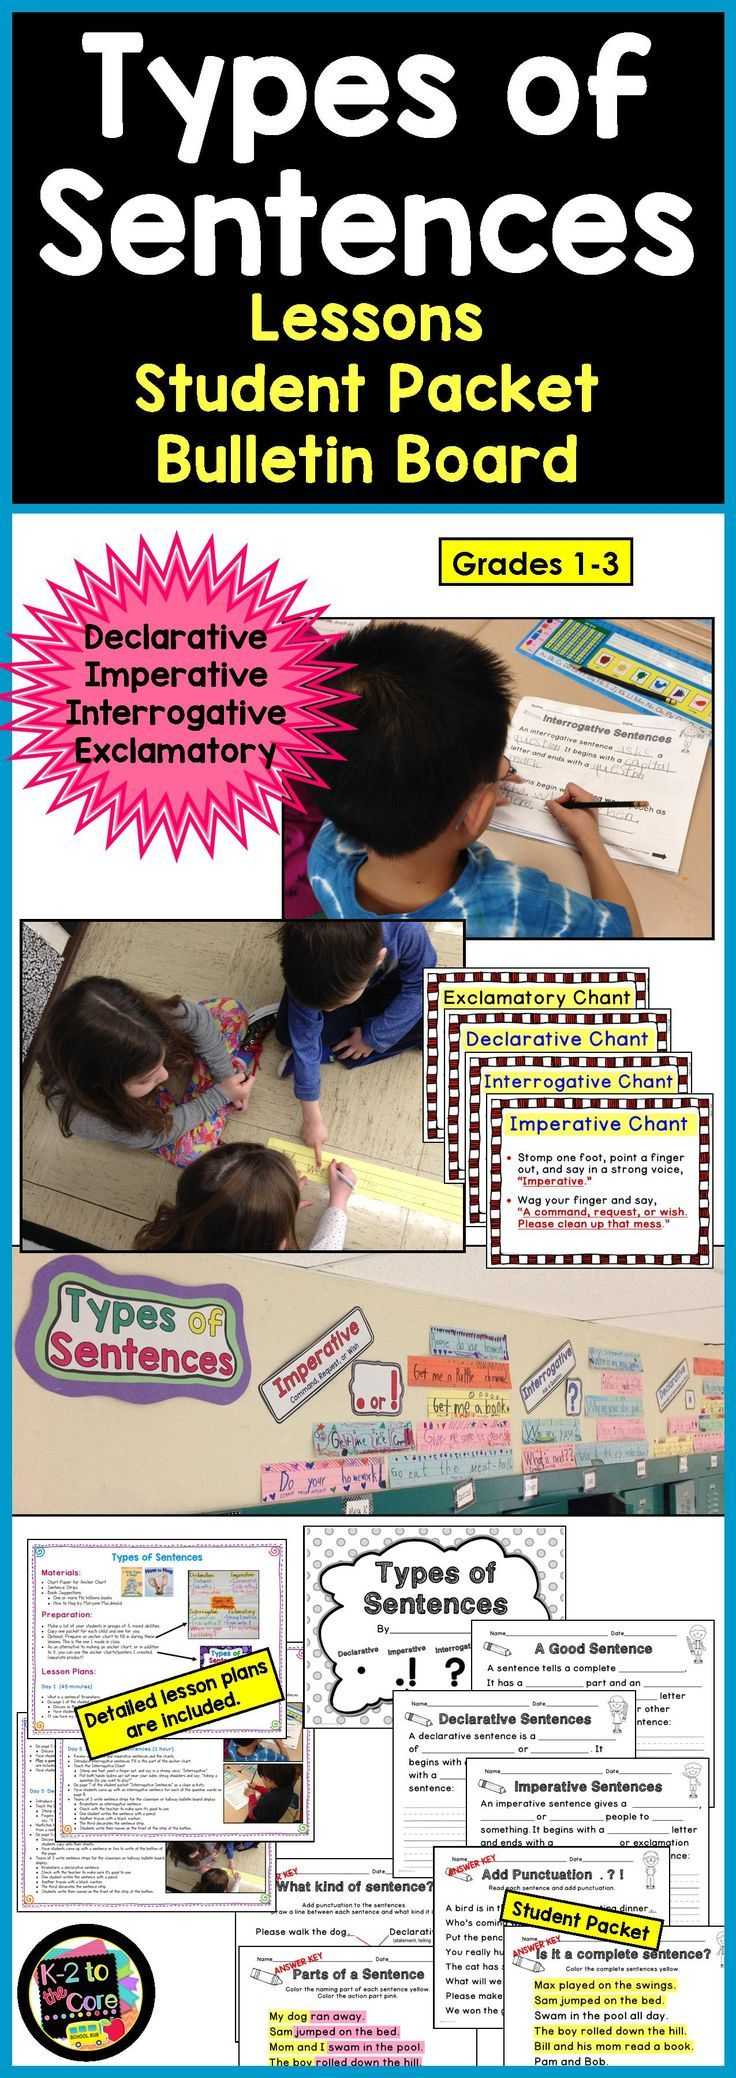 Teach your students about the four kinds of sentences (Declarative, Imperative, Interrogative, and Exclamatory), their punctuation, as well as what a complete sentence is, and what the two parts of a sentence are. I've included activities and materials that will engage your students and provide them with enjoyable practice in punctuating and identifying the different kinds of sentences. This product is one component of a bundle.